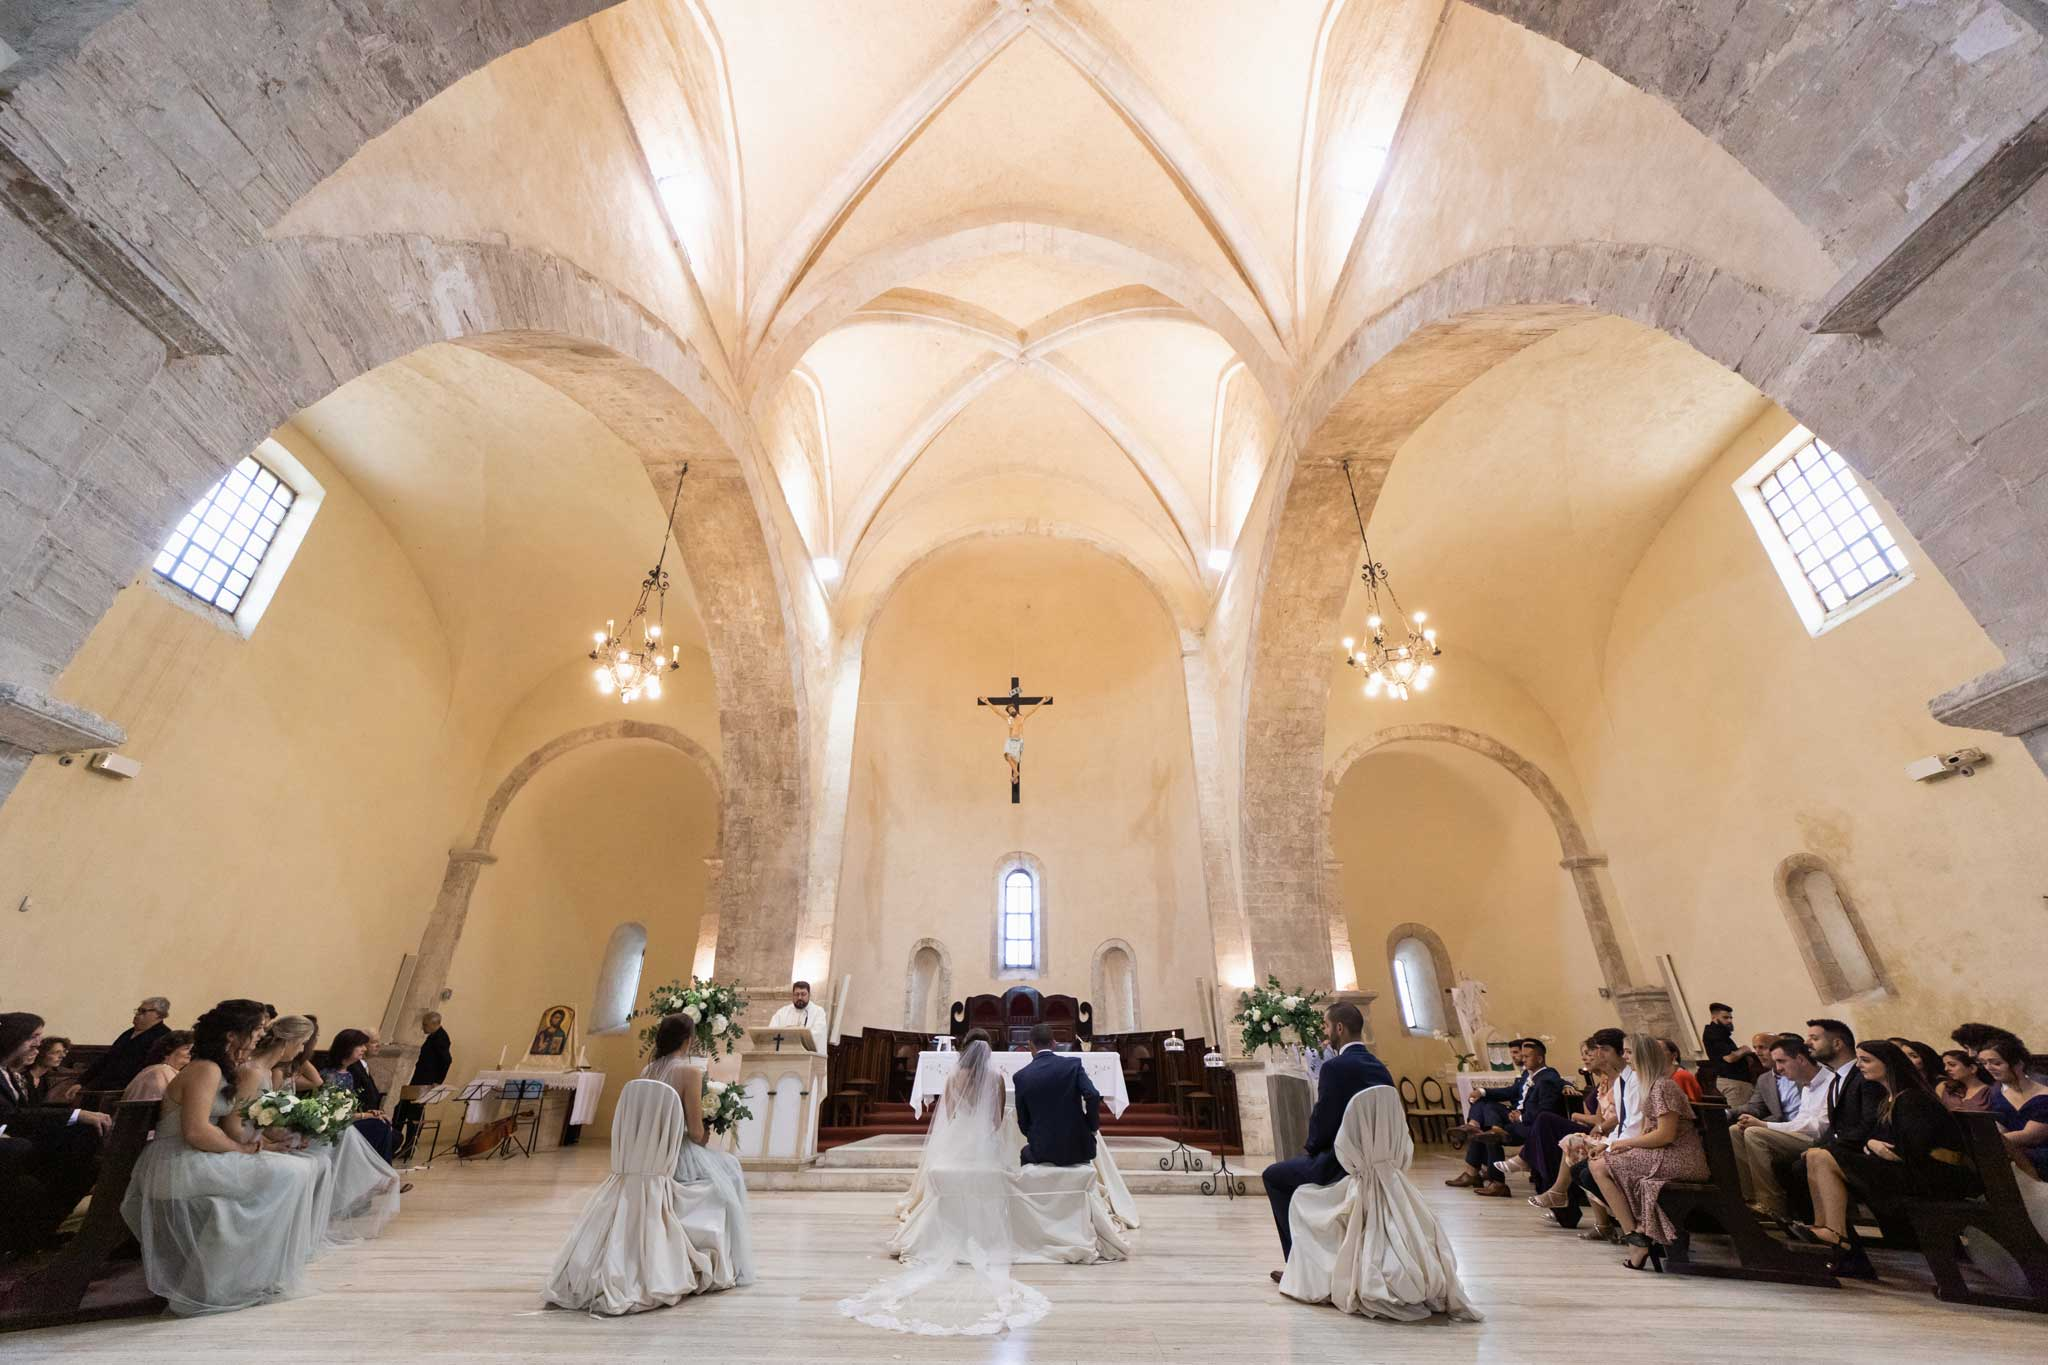 REQUIREMENTS TO GET MARRIED IN ITALY WITH A MIXED CATHOLIC MARRIAGE